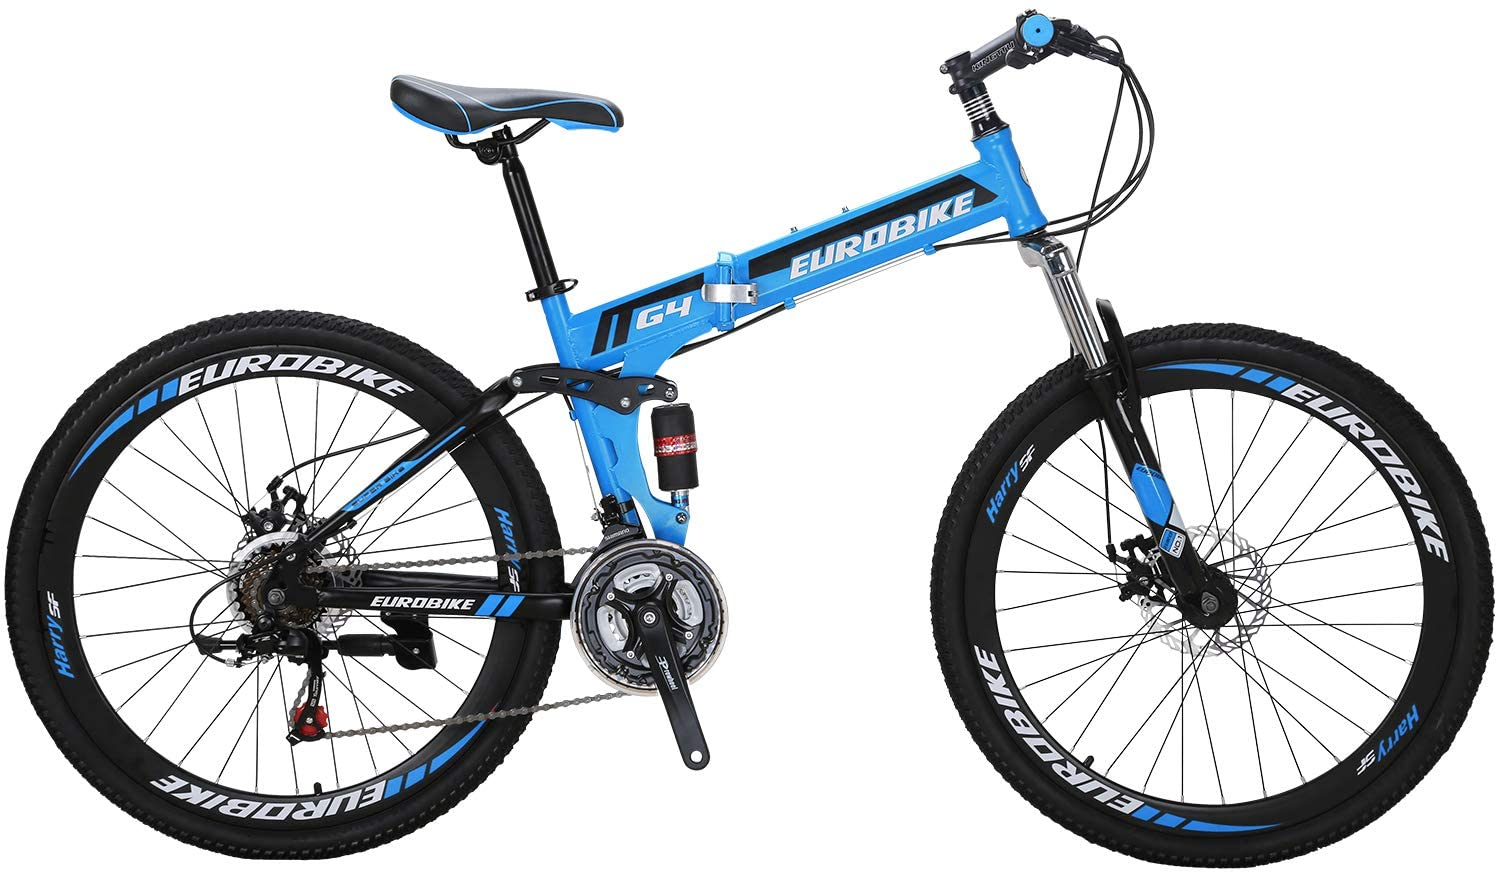 Best 10 Folding Mountain Bikes of [year] Reviews & Guide 2